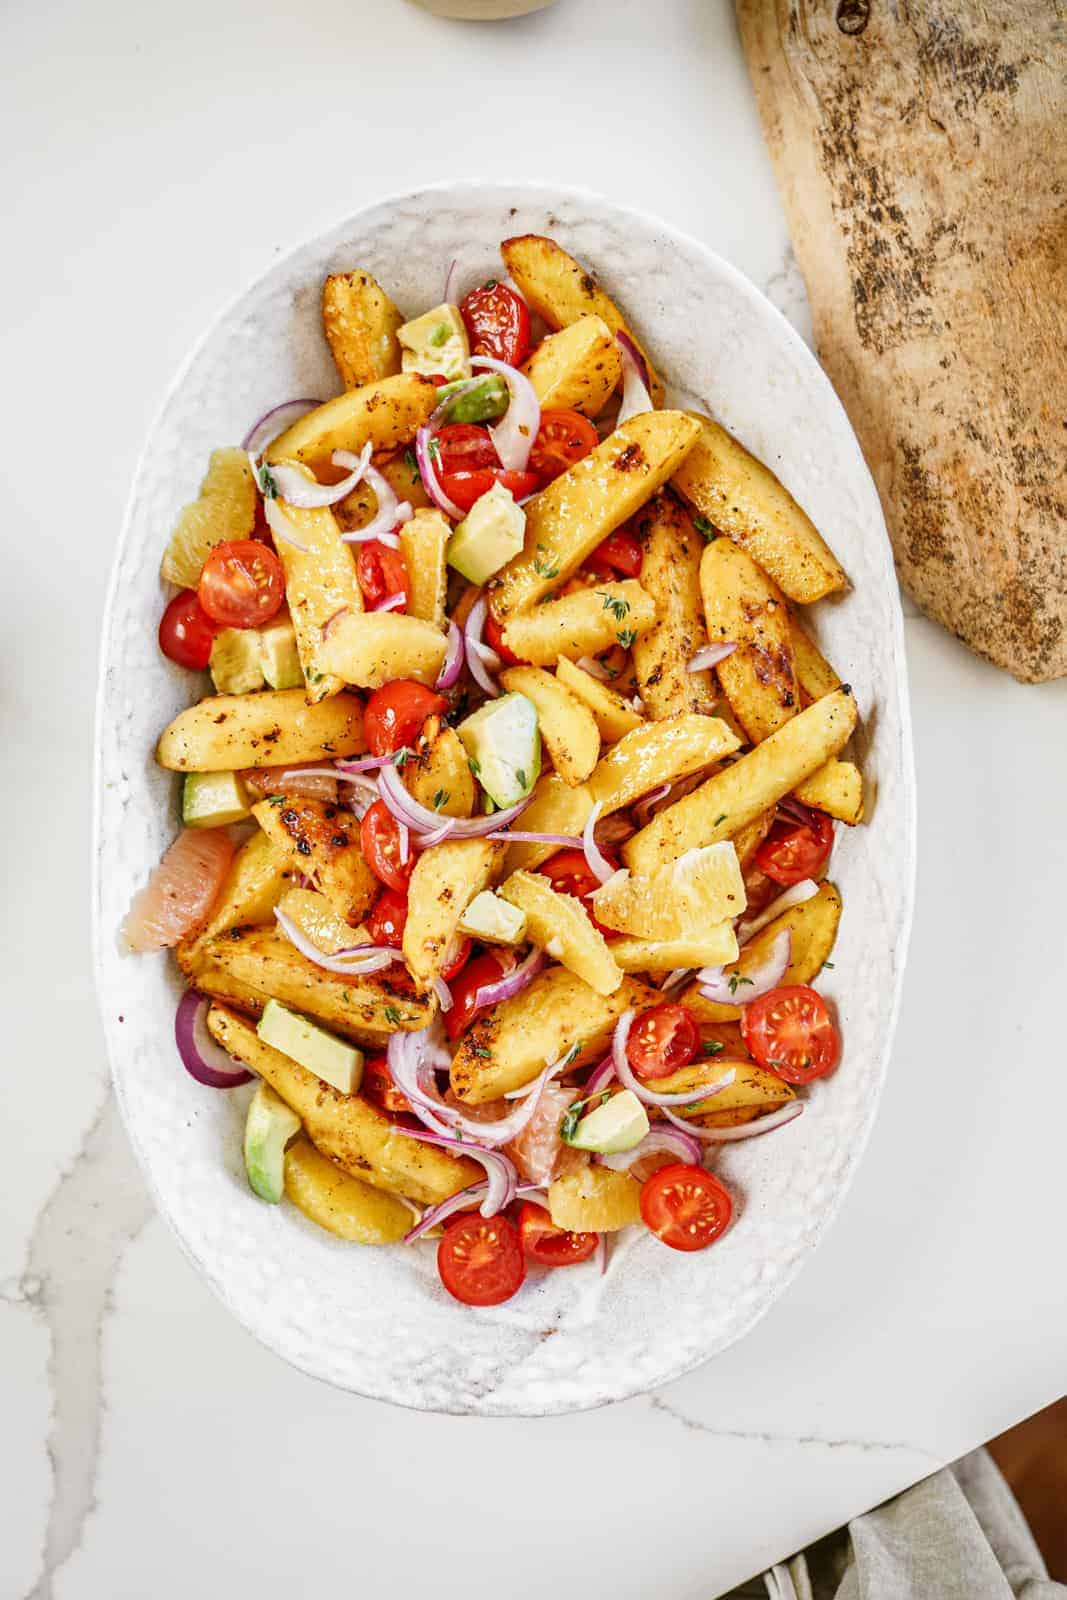 Serving dish filled with colorful vegan roasted potato salad.